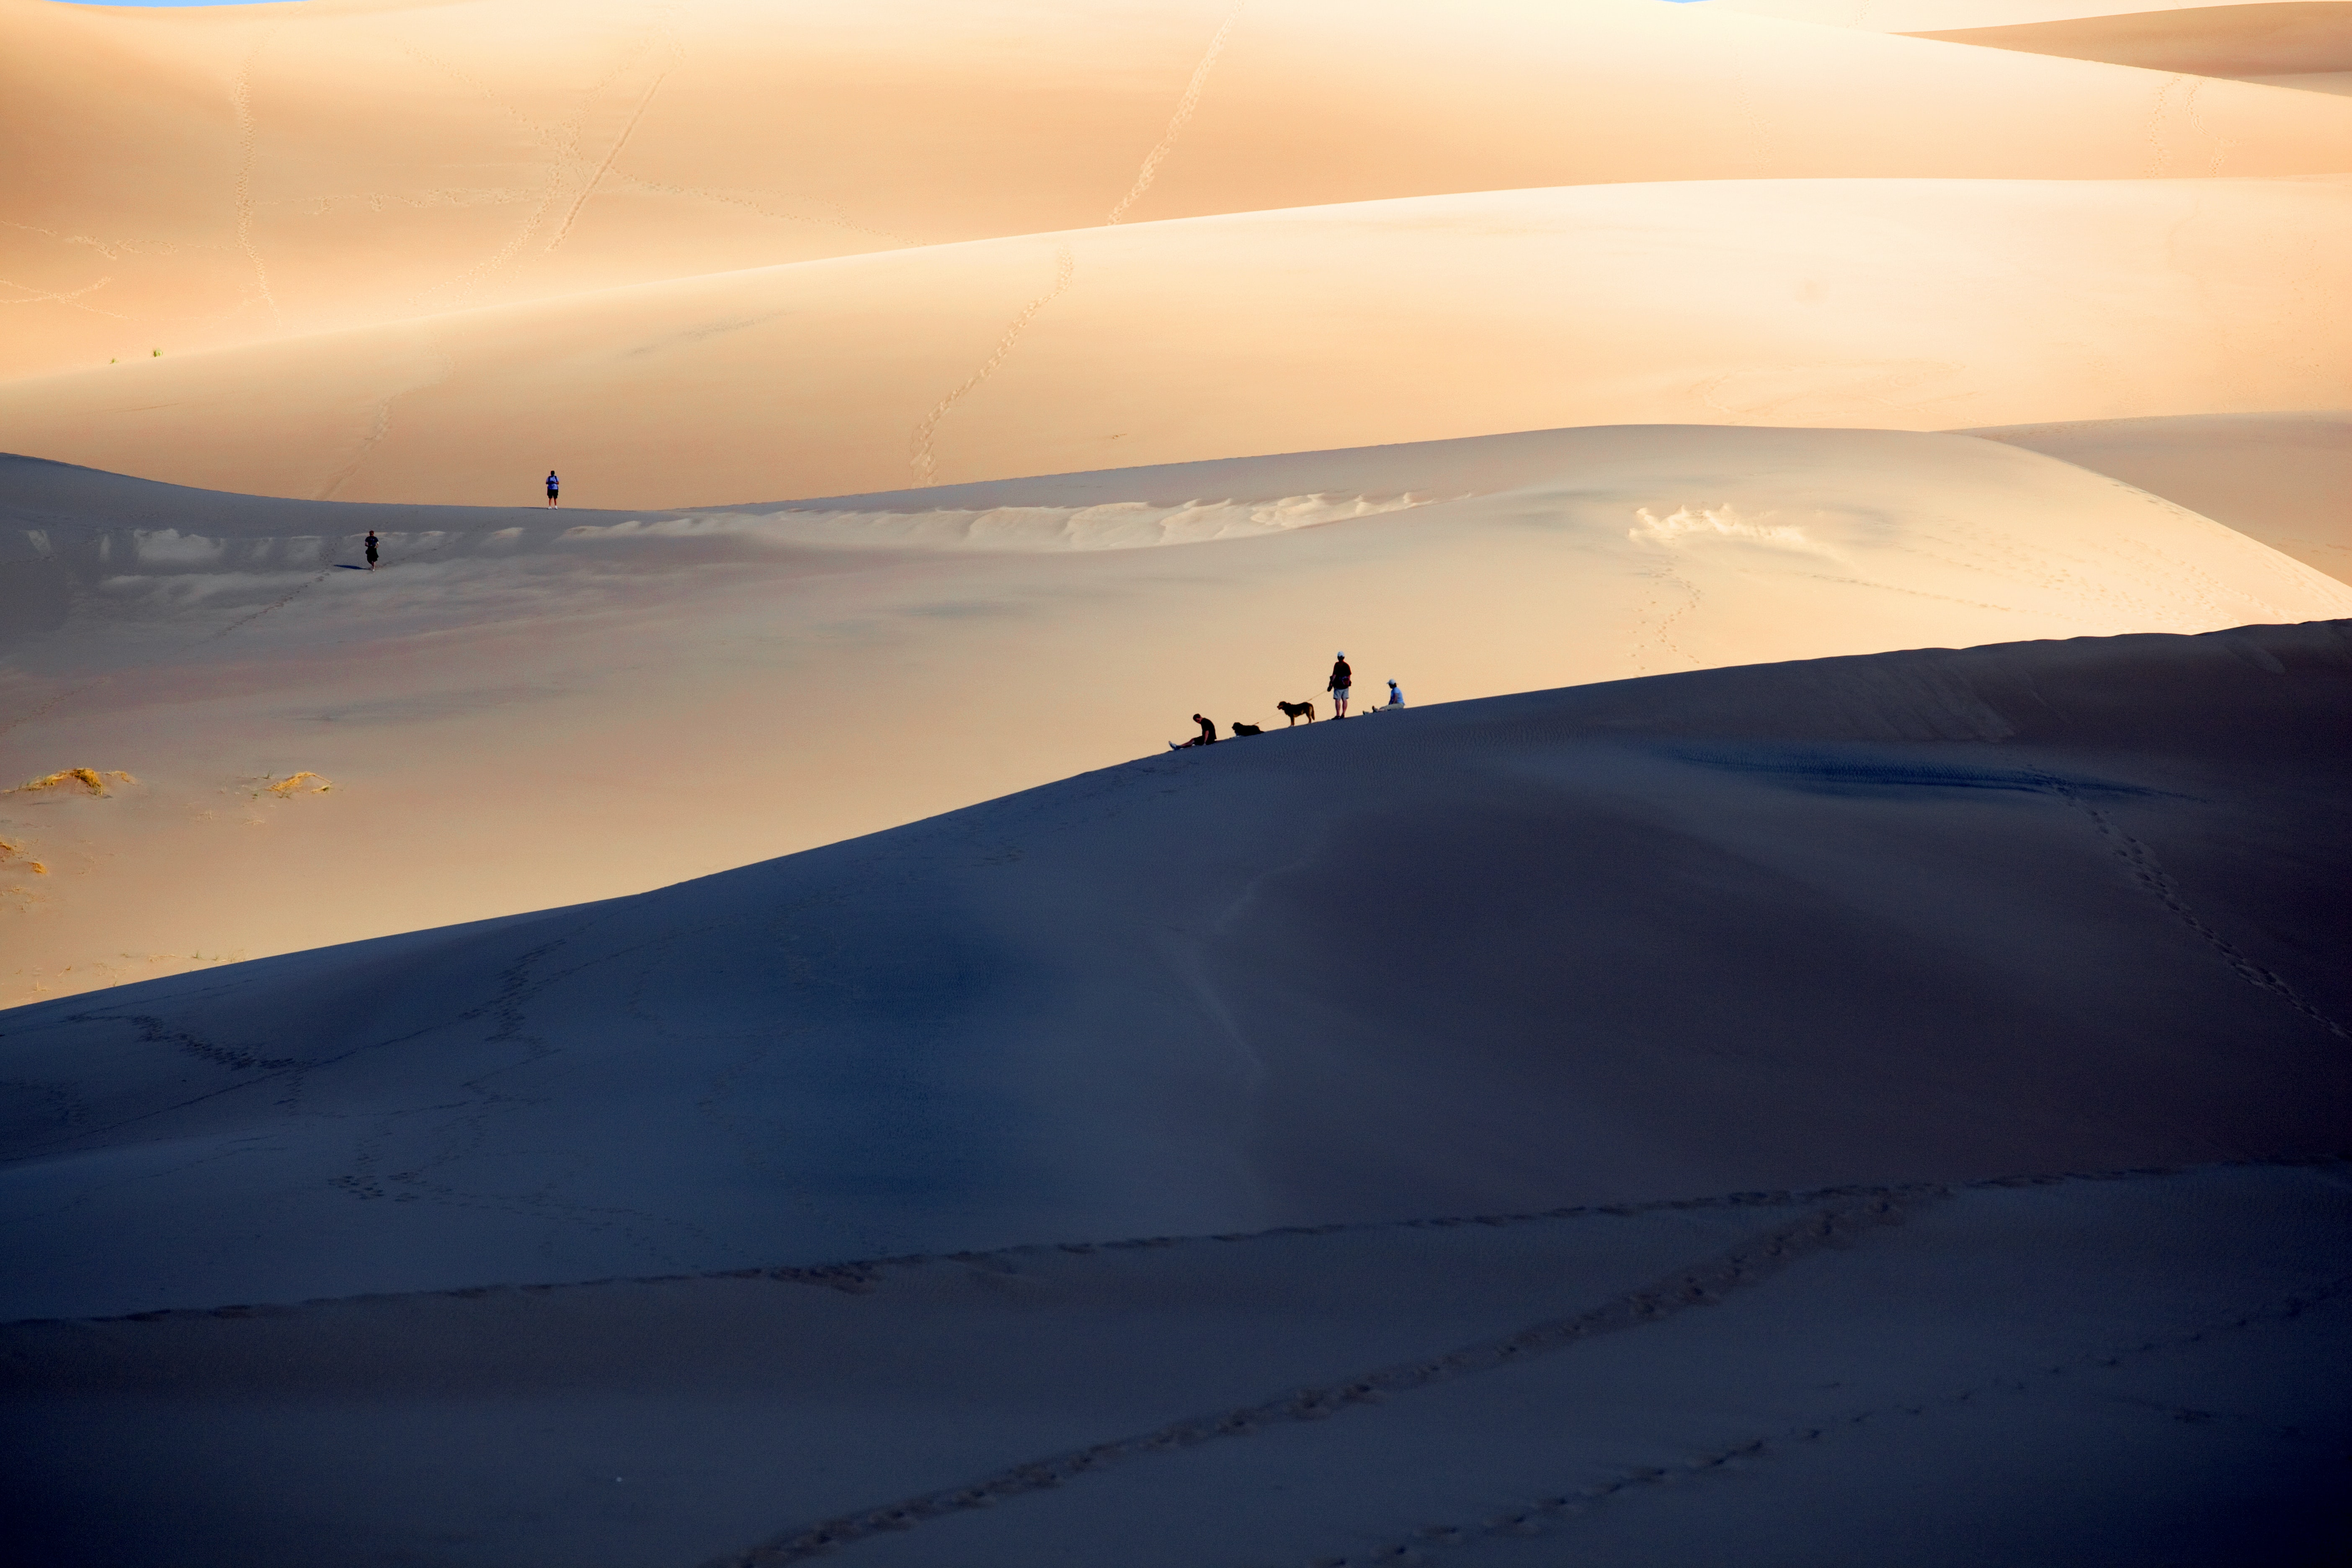 Hiking through the desert of Great Sand Dunes National Park and Preserve